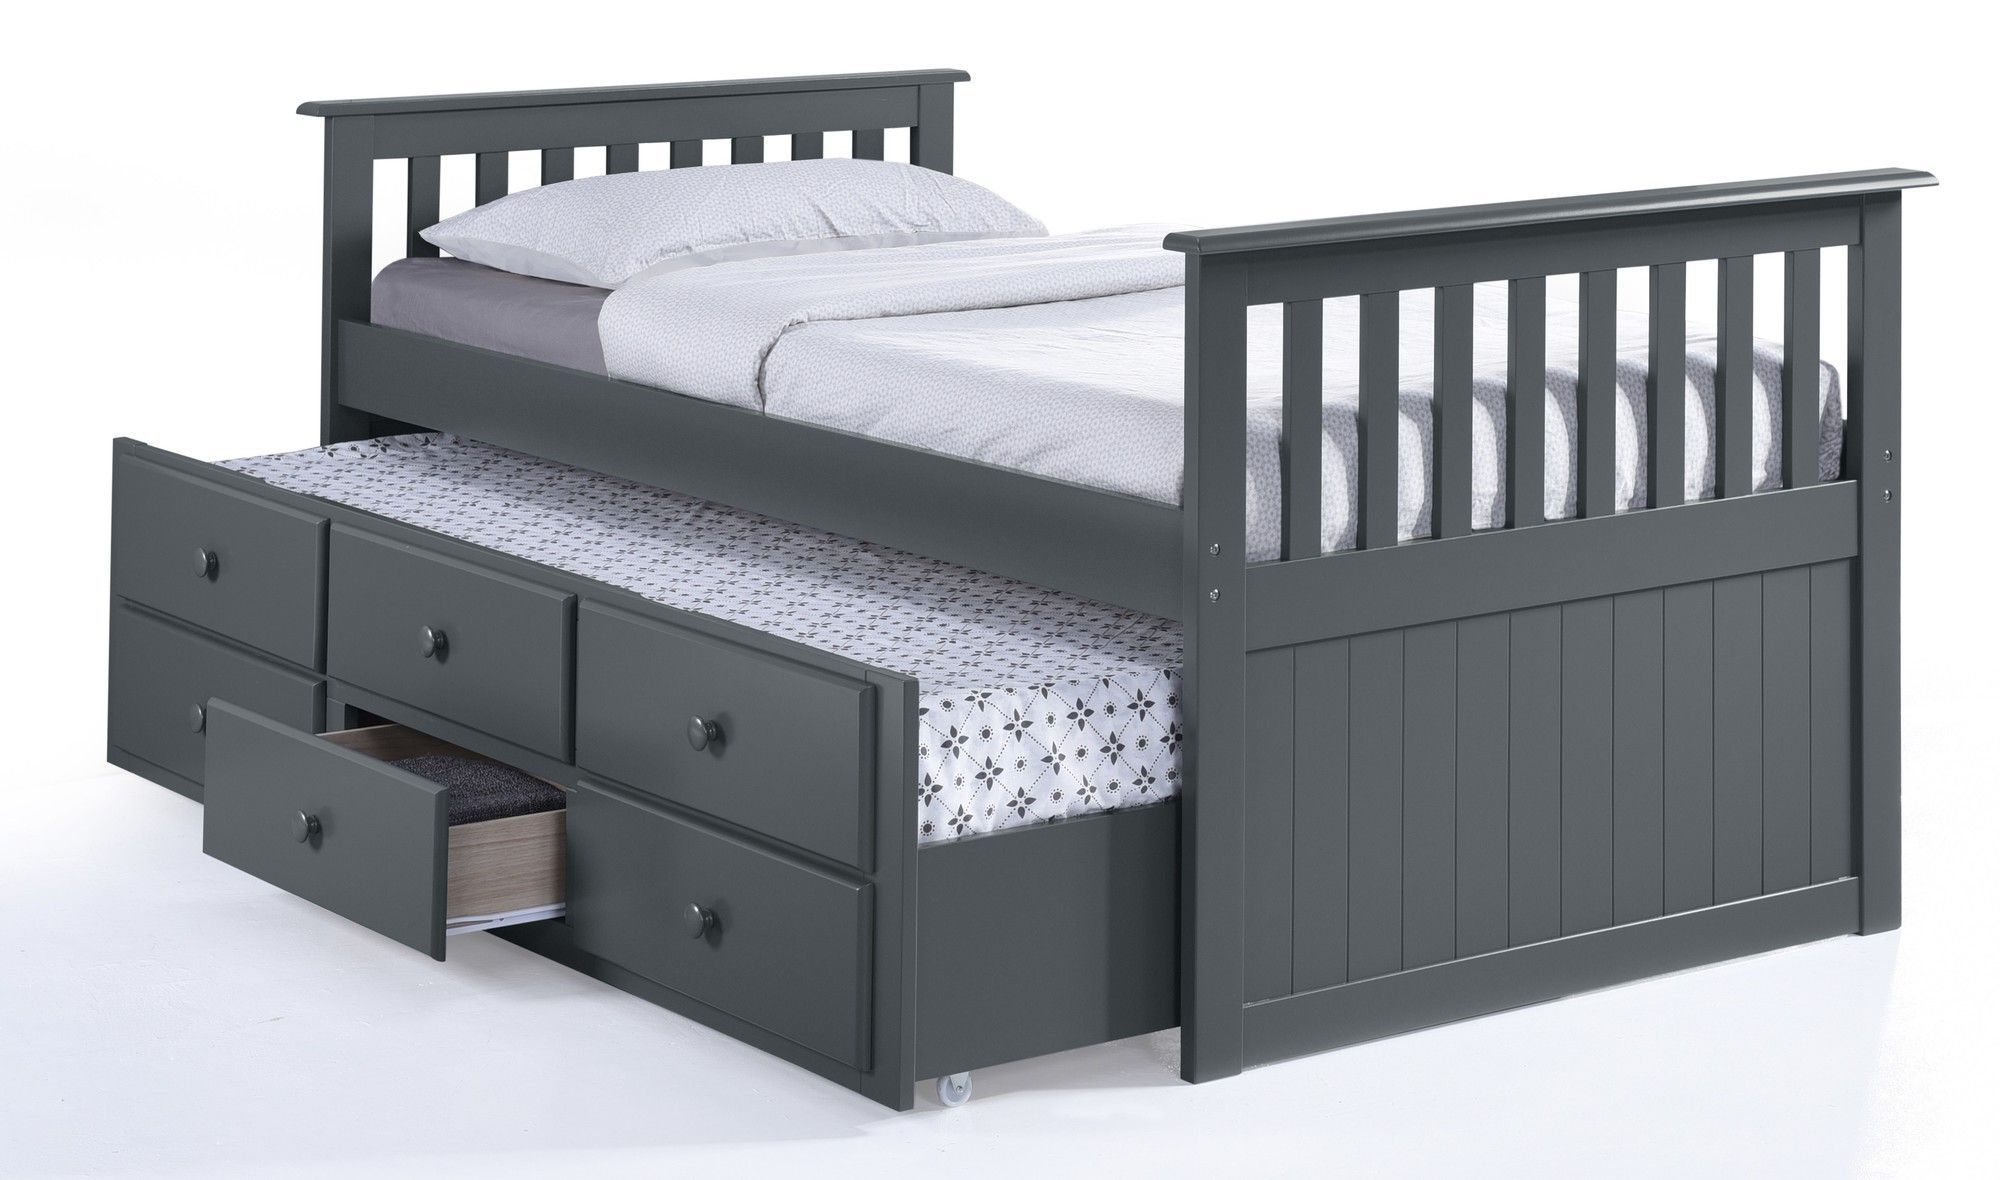 Features Made Of High Quality Solid Wood And Composites